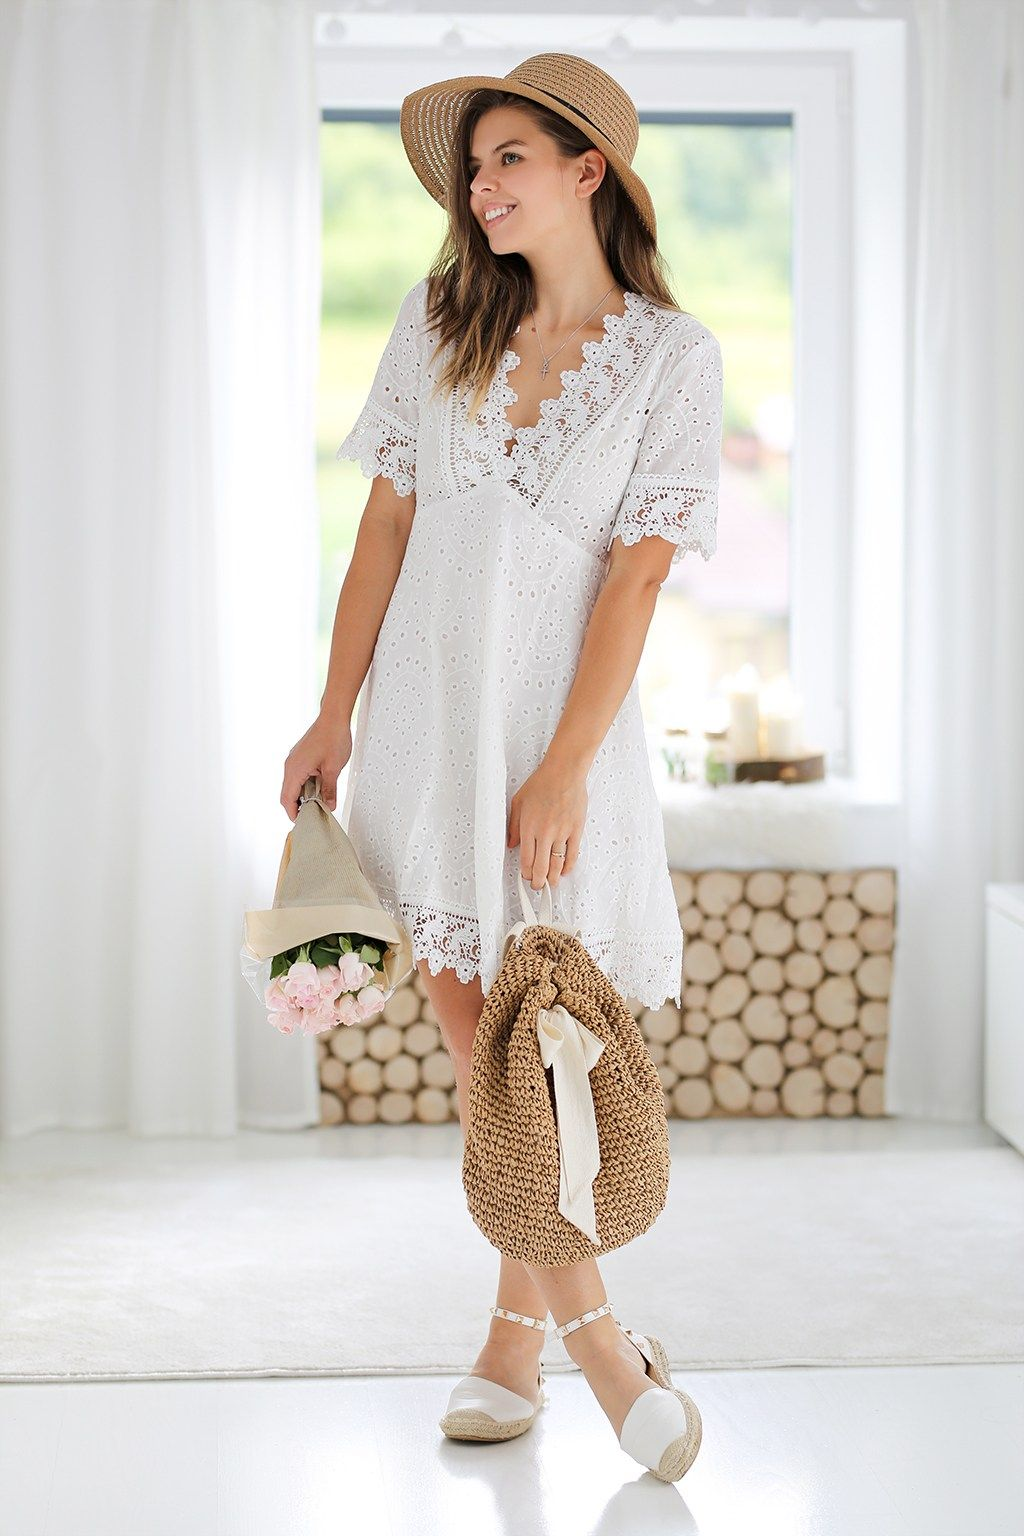 bc86a9a37d3a SHEIN #Lace #Trim #Eyelet #Embroidered #Dress | Elegant Look in 2019 ...